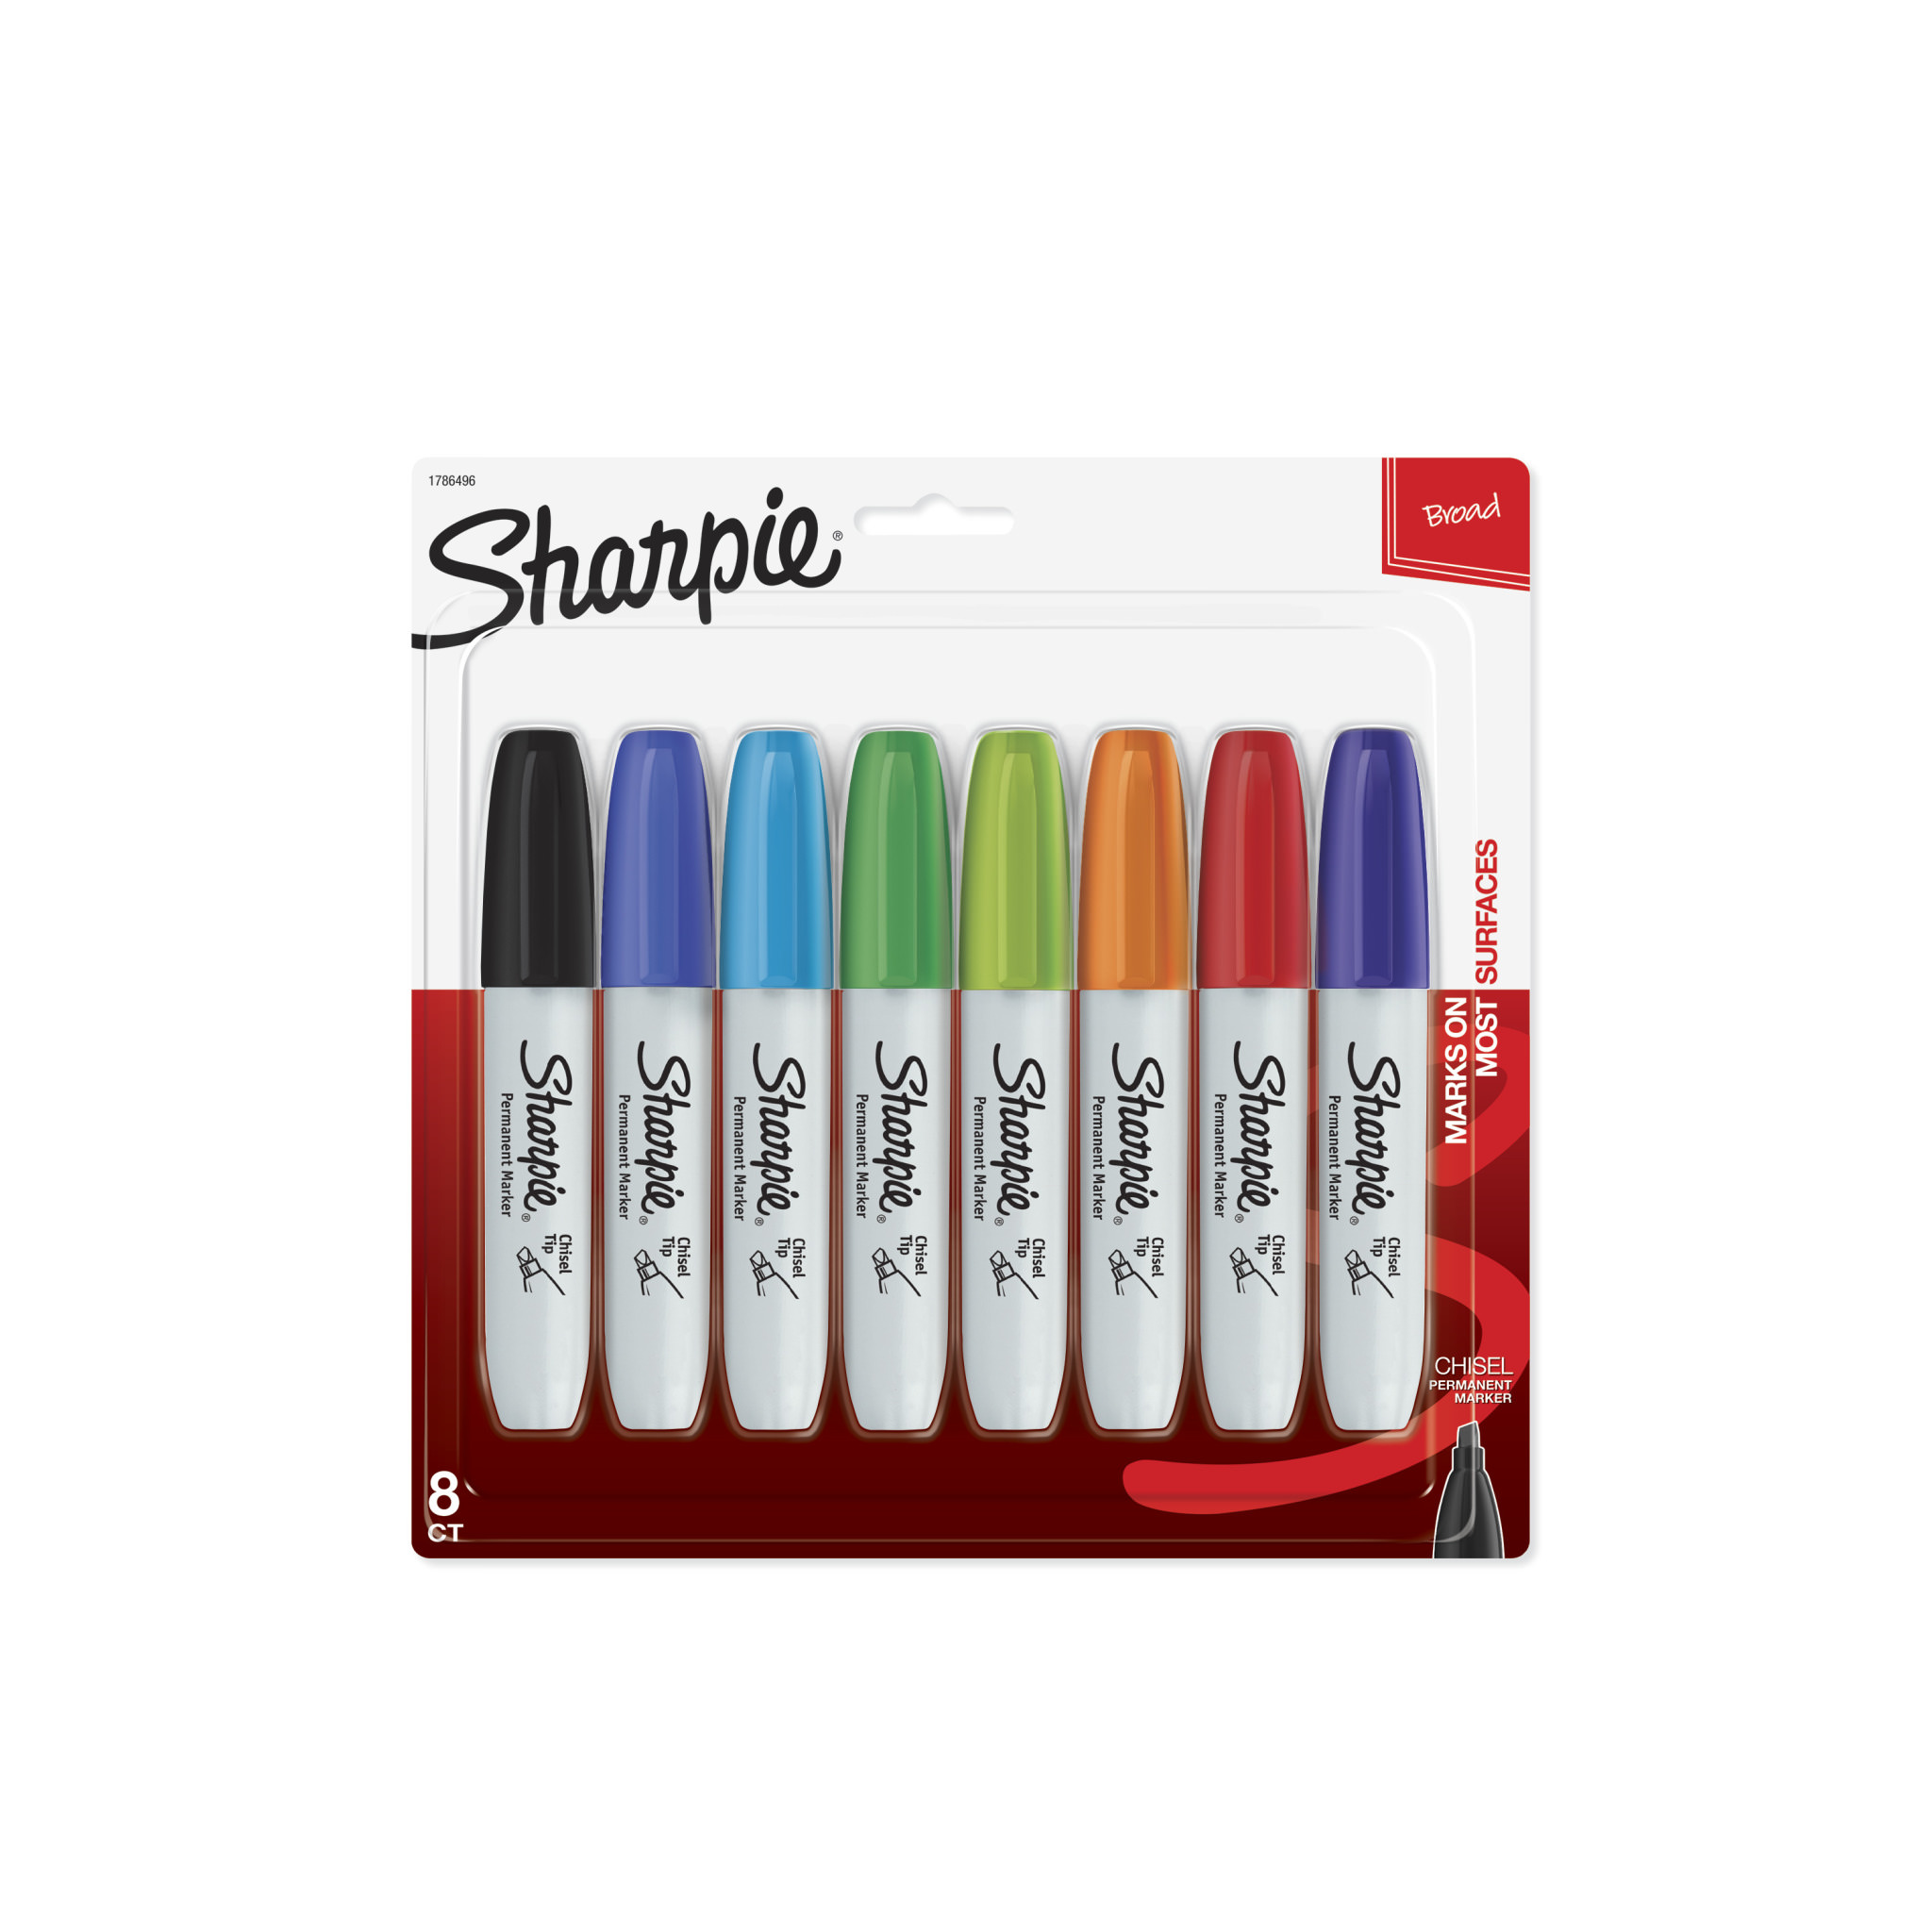 Sharpie Permanent Markers, Chisel Tip, Classic Colors, 8 Count